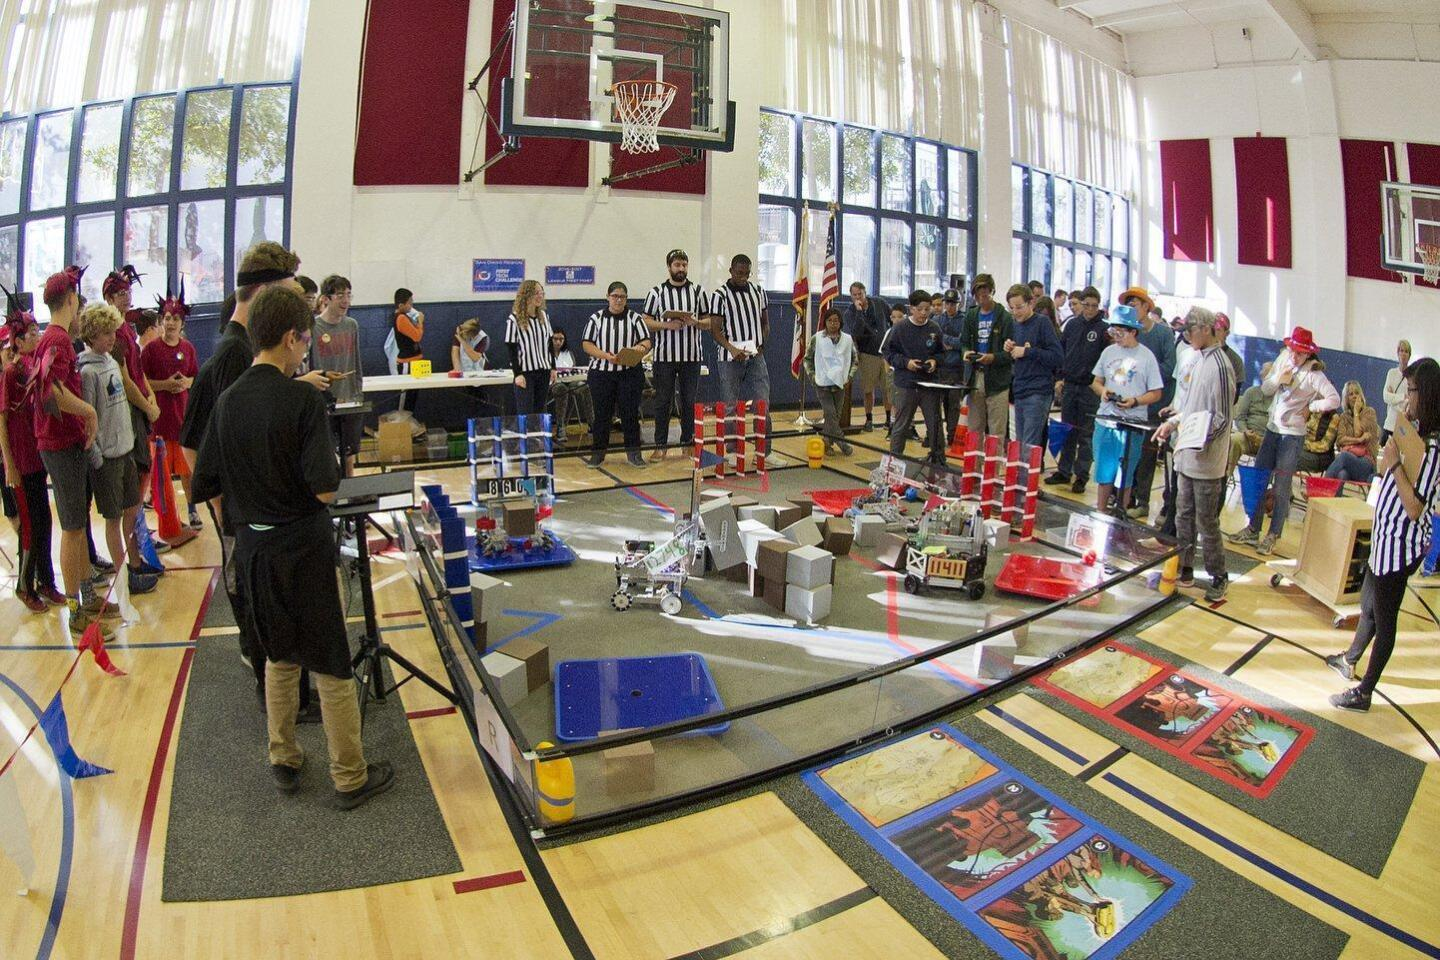 Teams from RSF middle school and visiting teams from around the San Diego region participate in the FTC Robotics competition.